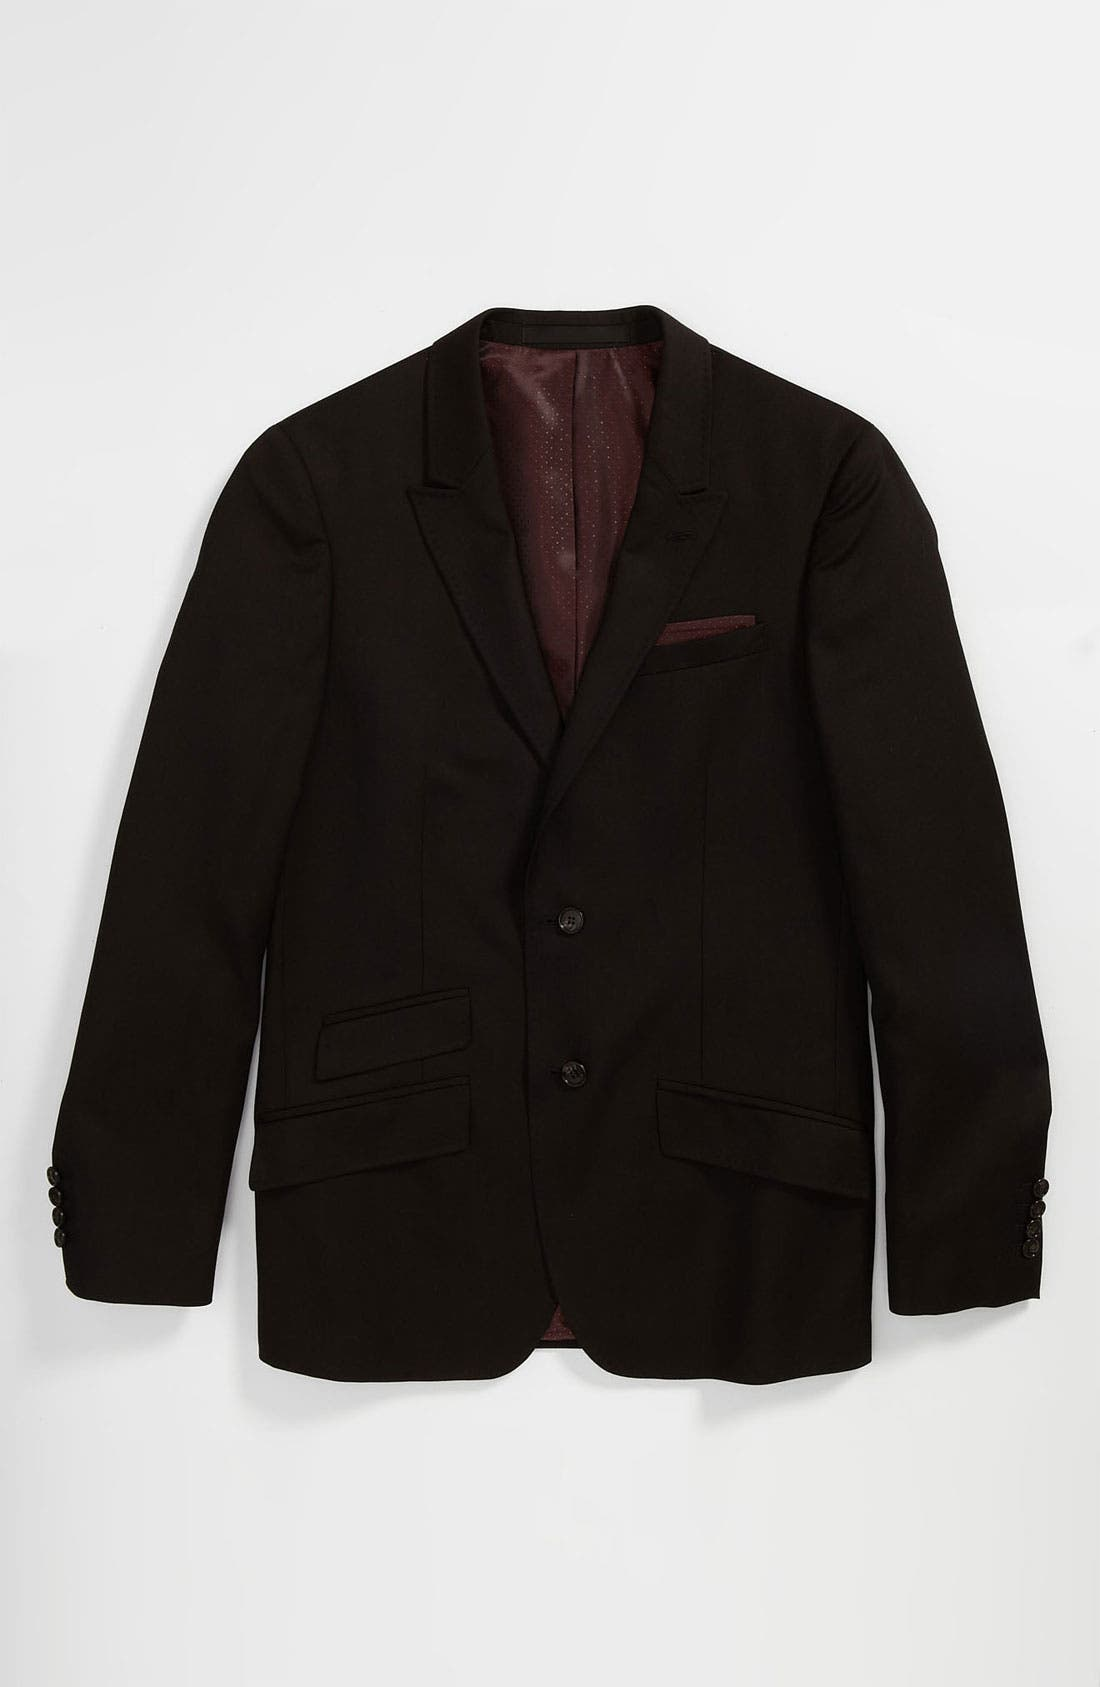 Alternate Image 1 Selected - Topman 'Super Premium - Russo' Trim Fit Blazer